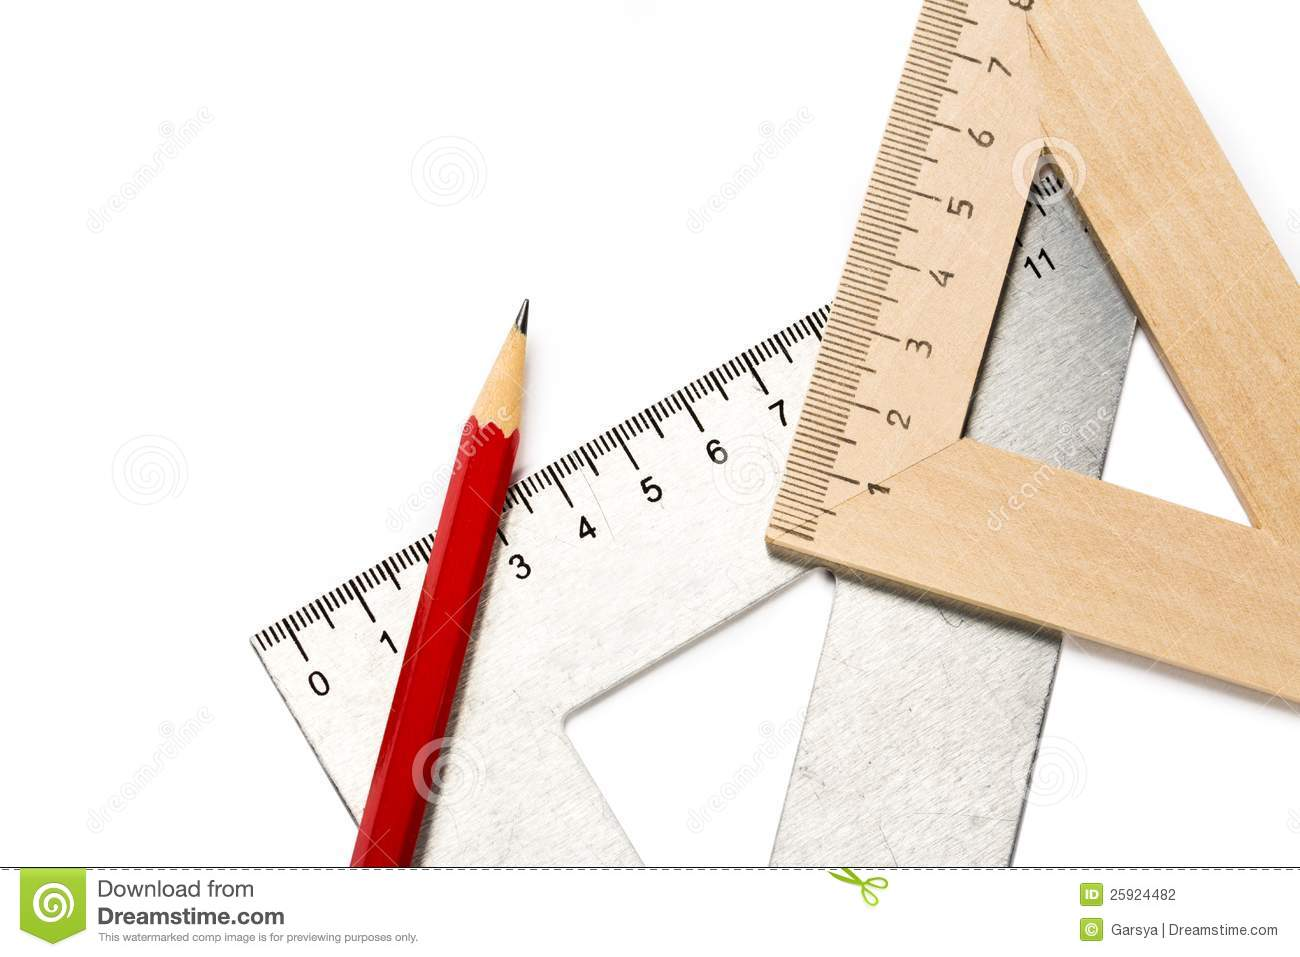 Drafting tools stock photo image of measurement for Online architect drawing tool free